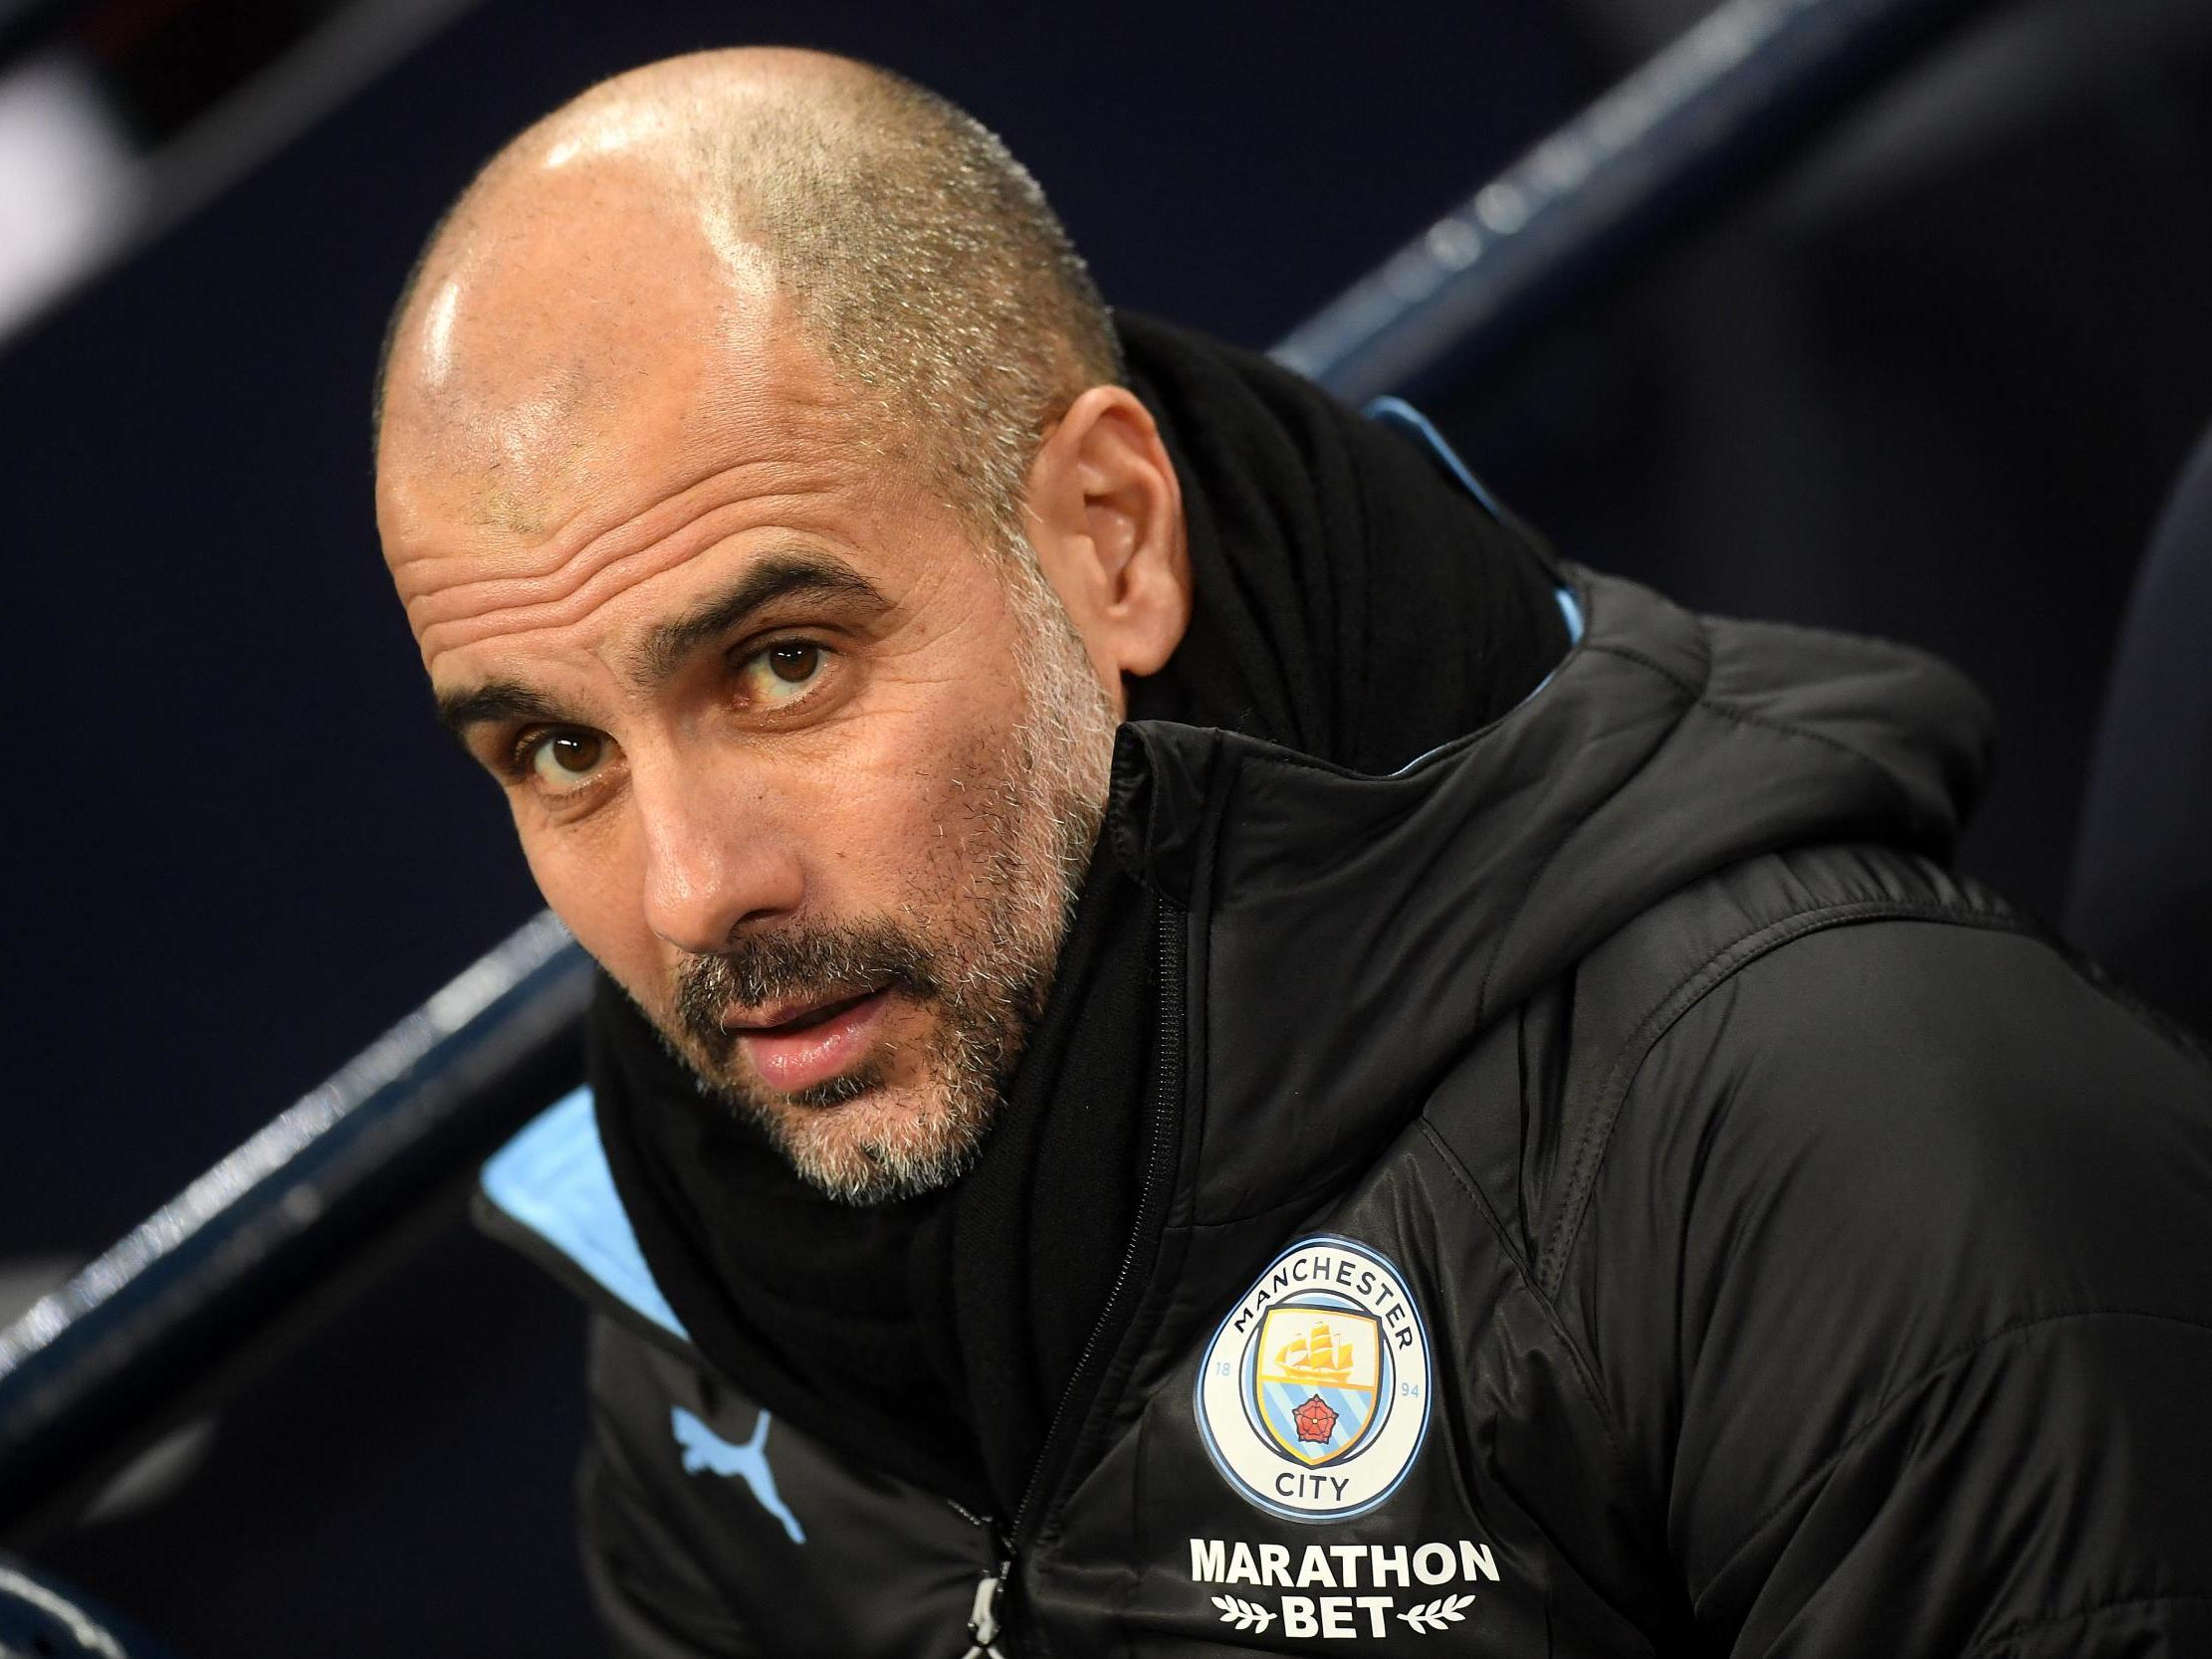 Manchester City manager Pep Guardiola gave permission for players' party with Instagram models